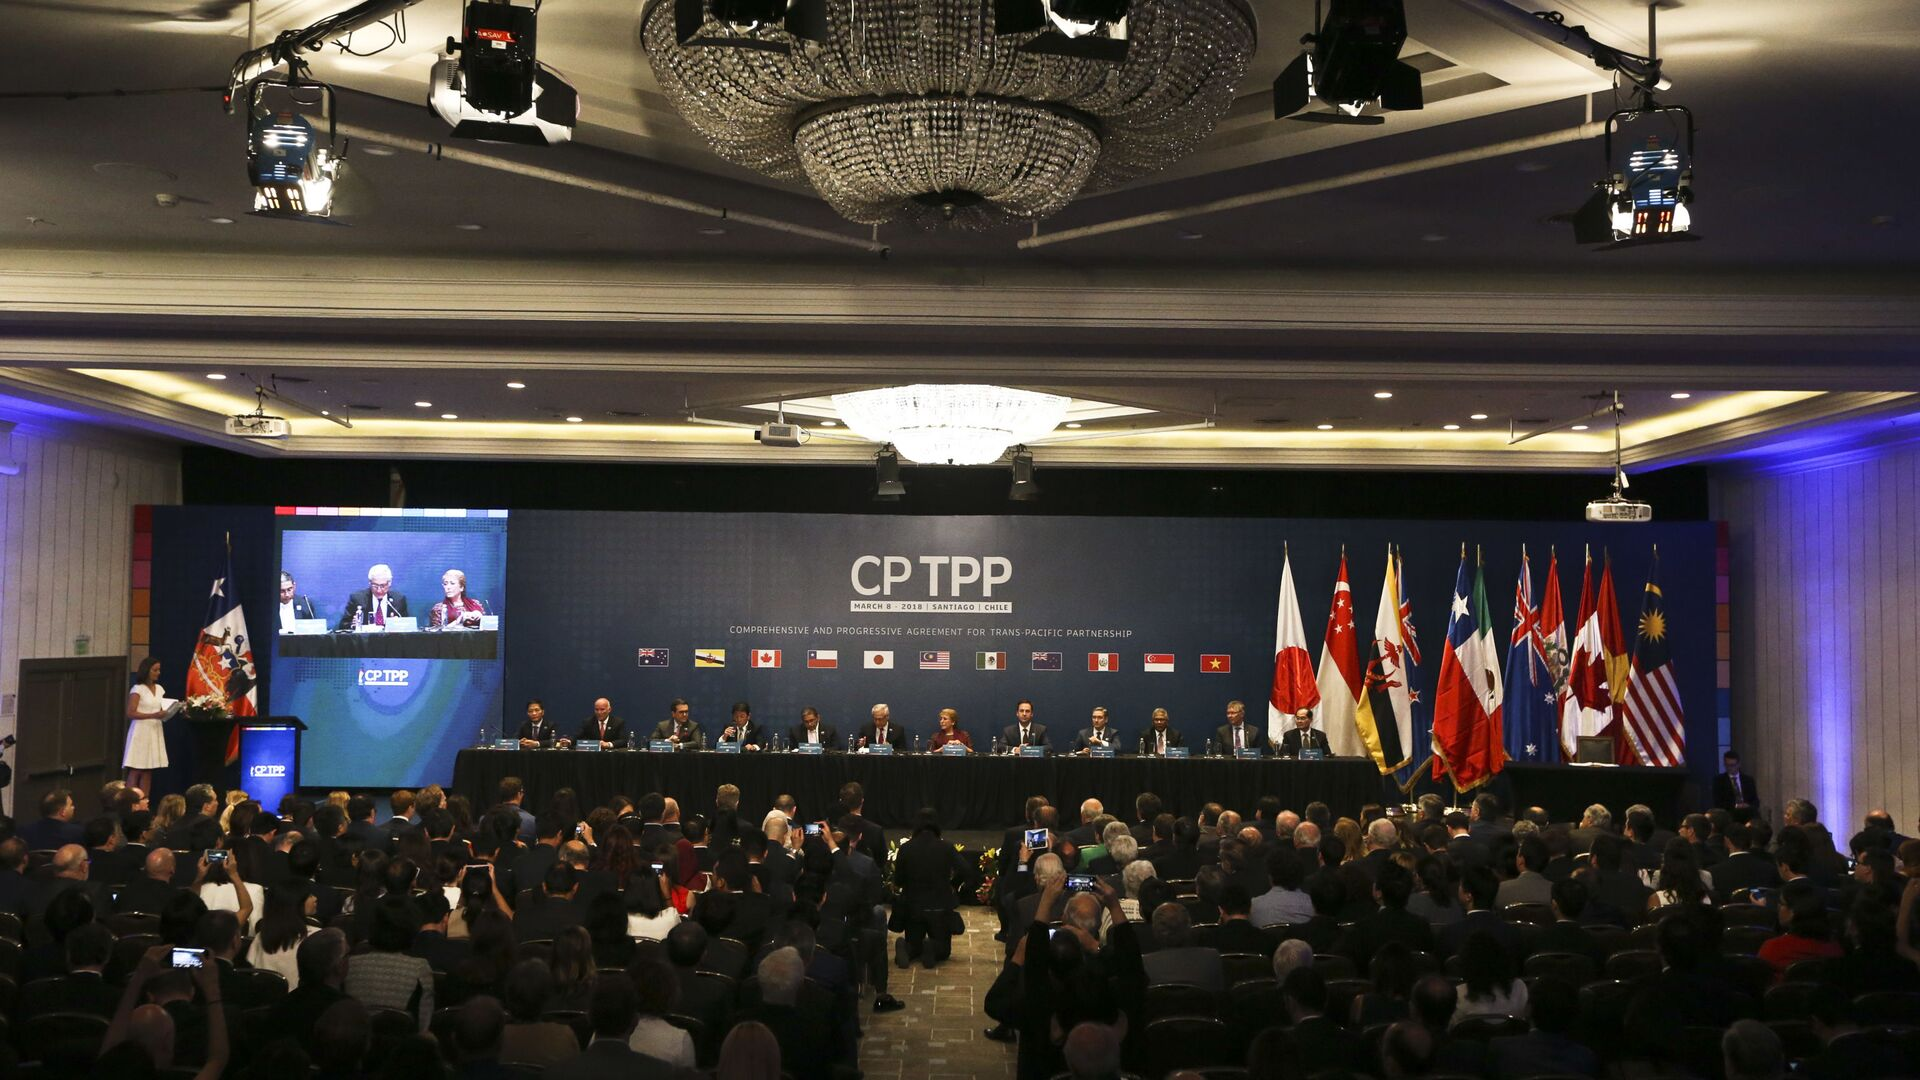 Chile's President Michelle Bachelet and representatives of the eleven countries take part in the signing ceremony agree the Comprehensive and Progressive Agreement for Trans-Pacific Partnership, CP TPP, in Santiago, Chile, Thursday, March 8, 2018 - Sputnik International, 1920, 28.09.2021